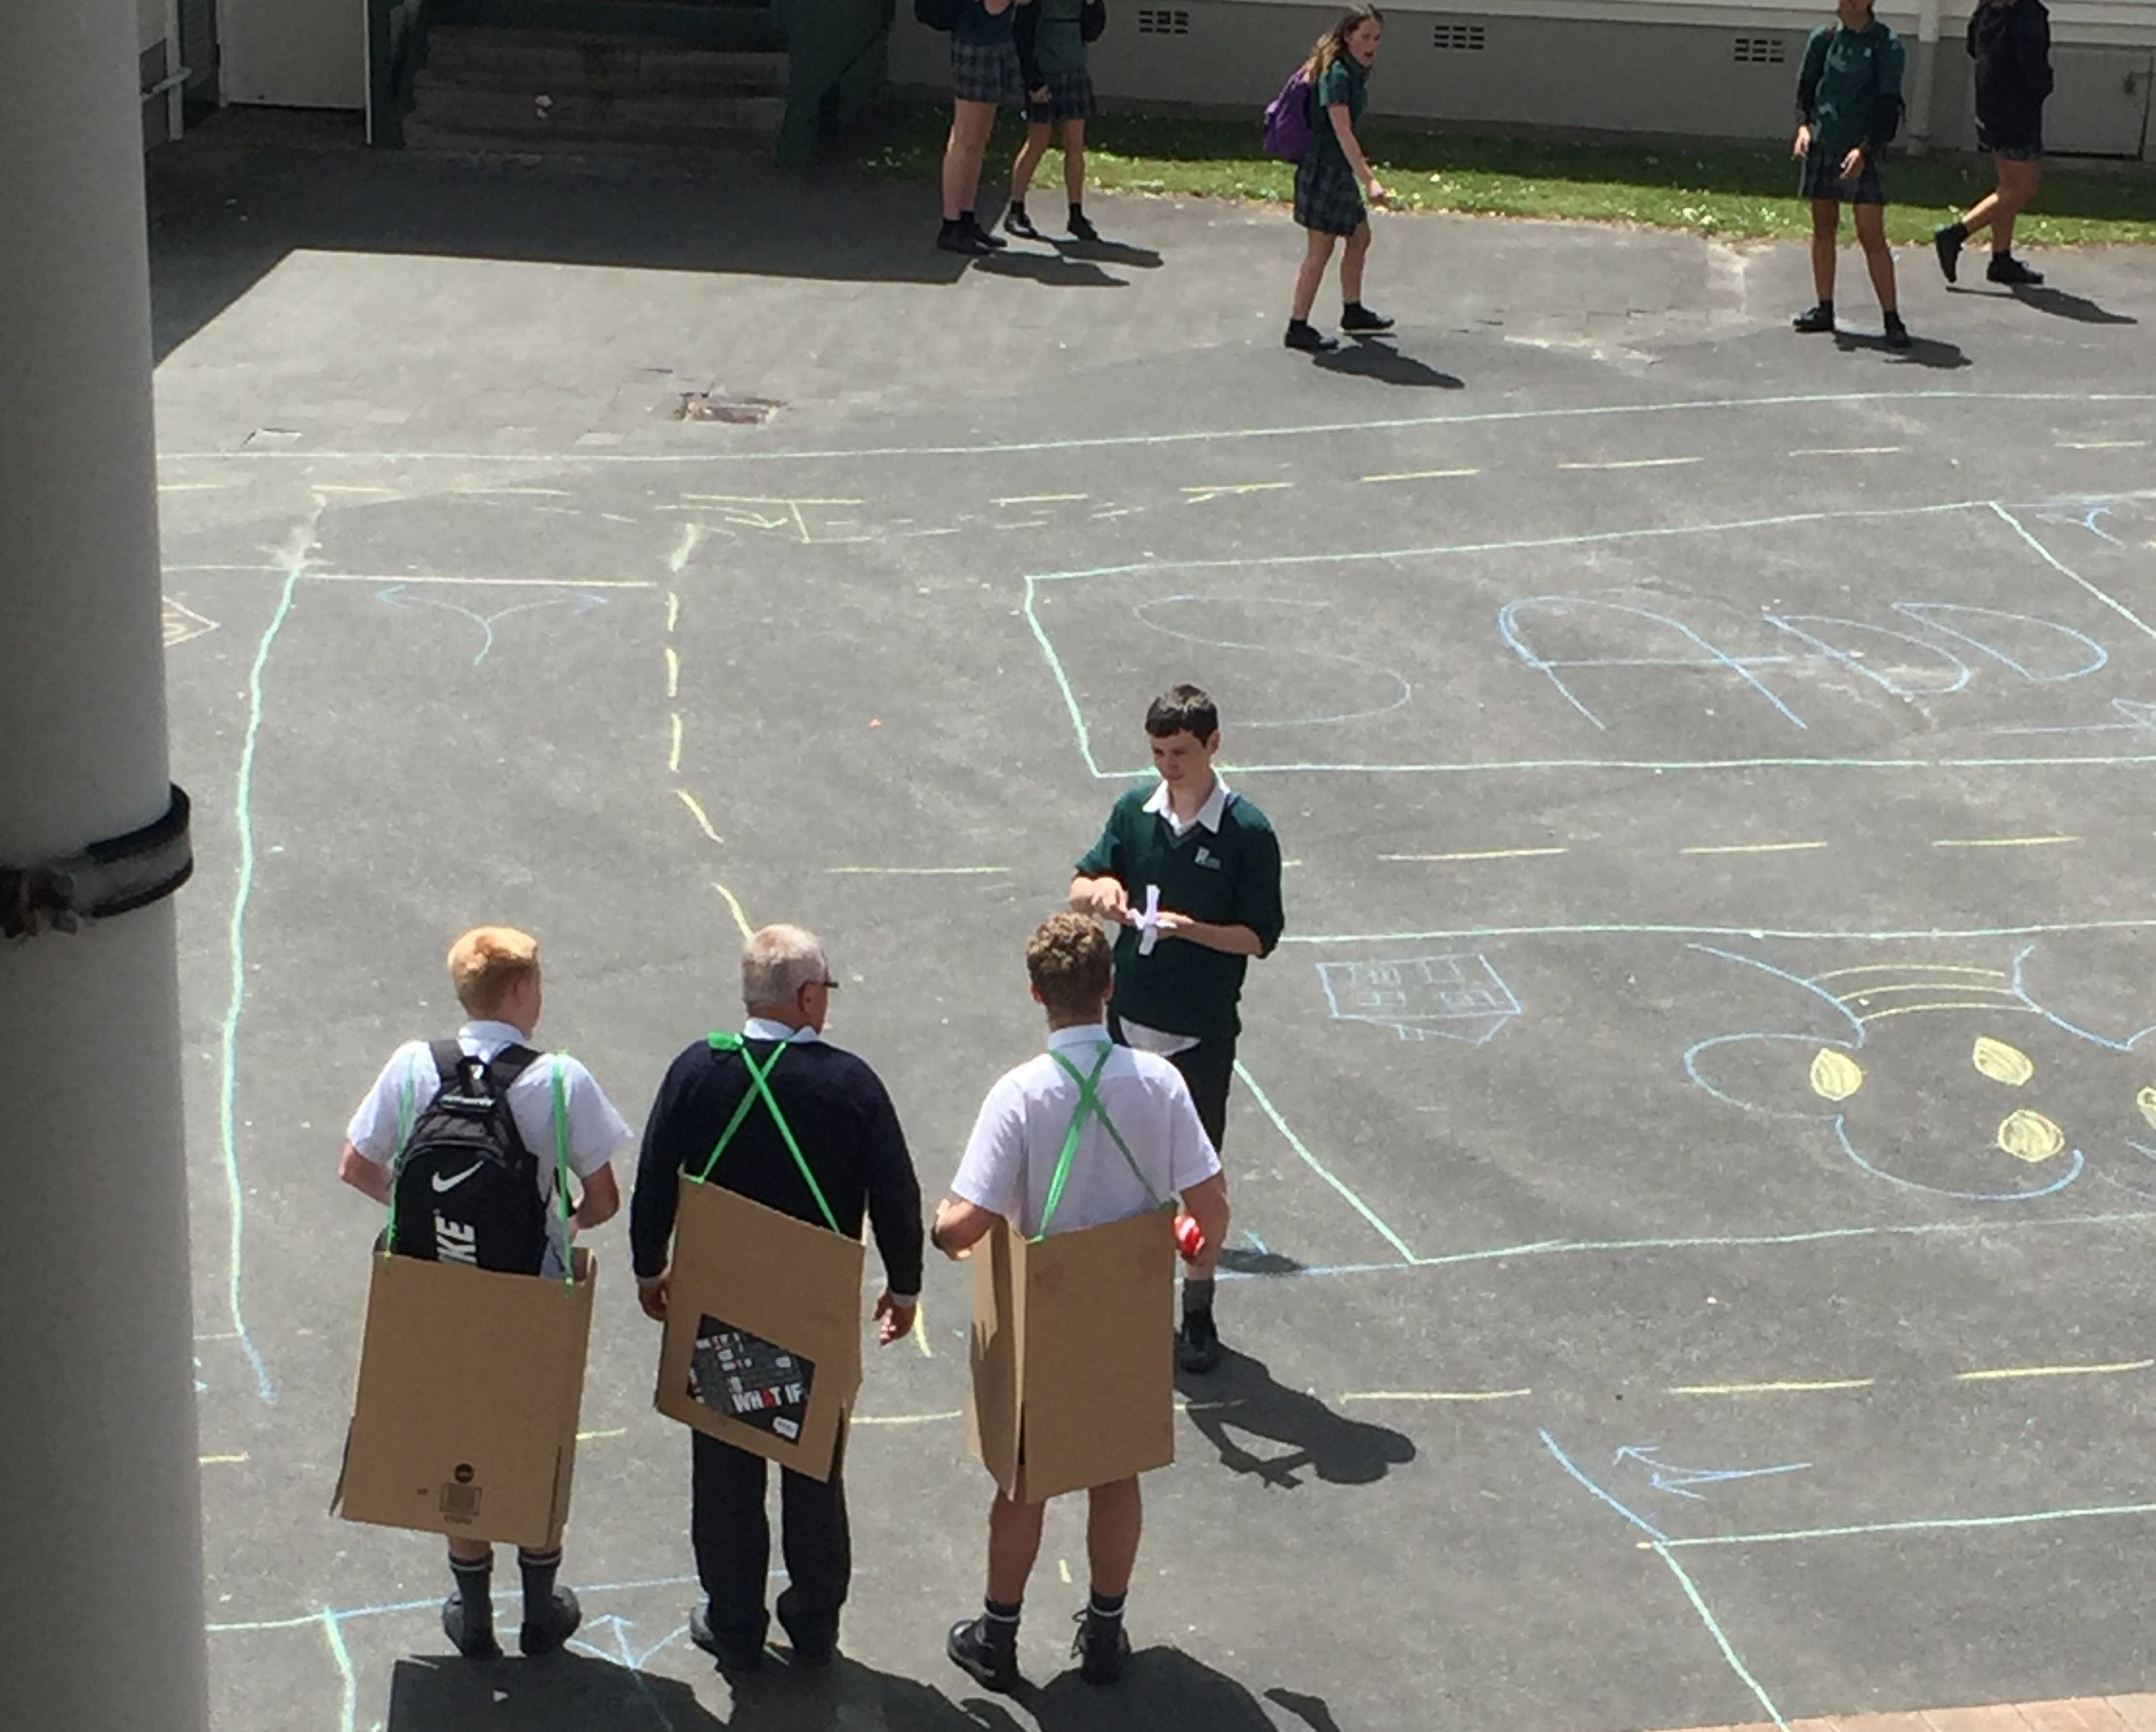 Students had to complete a chalk road course in cardboard cars to demonstrate their knowledge of the road rules